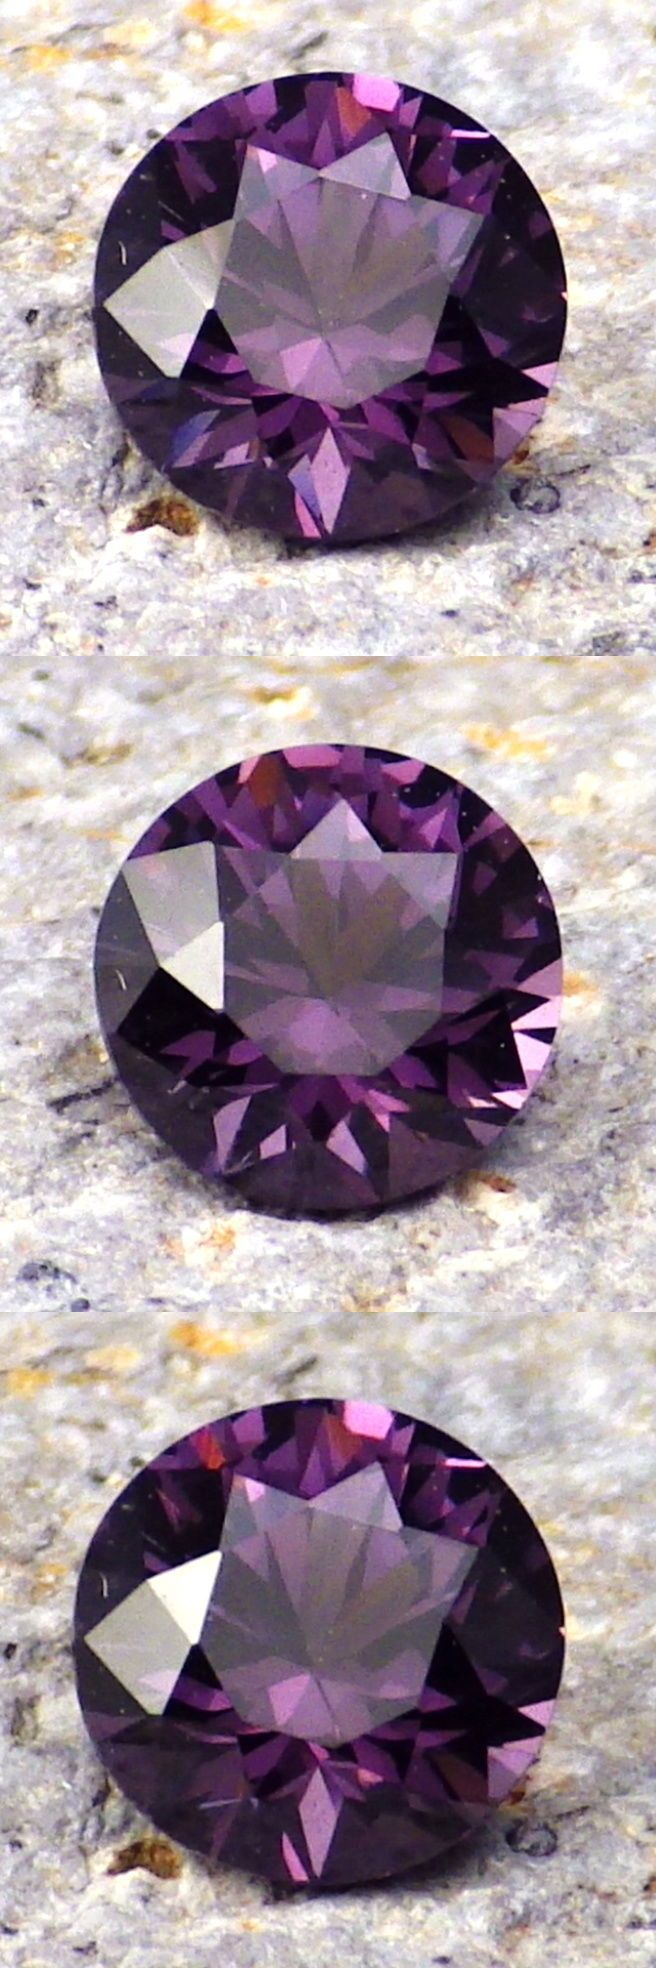 Spinel 110873: Spinel-Madagascar 1.02Ct Eye Clean-Purple Lavender Color-Calibrated! -> BUY IT NOW ONLY: $50 on eBay!